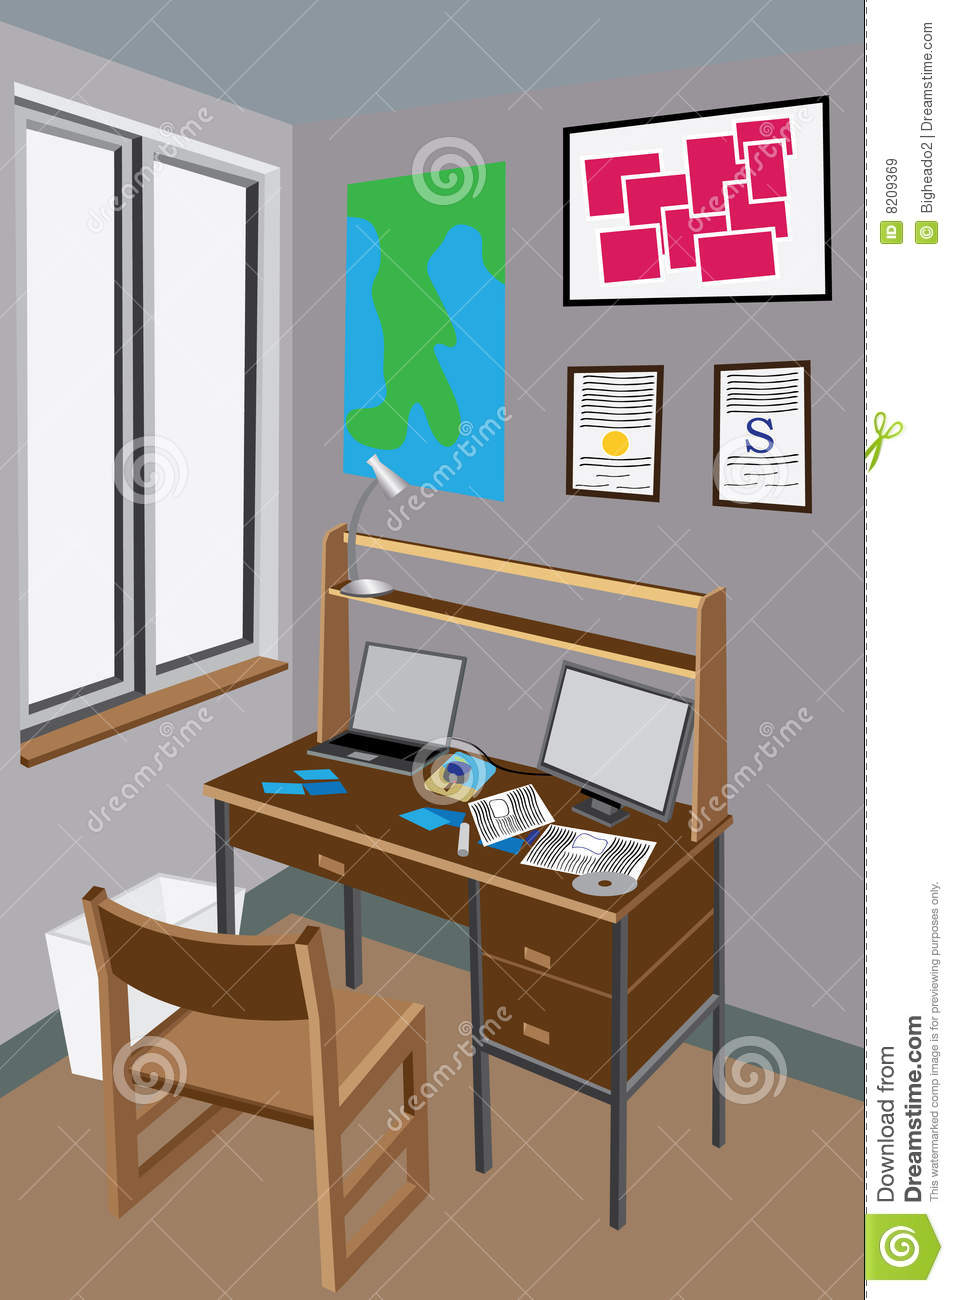 xl desk chair ergonomic qld messy stock vector. illustration of dormitory, residence - 8209369